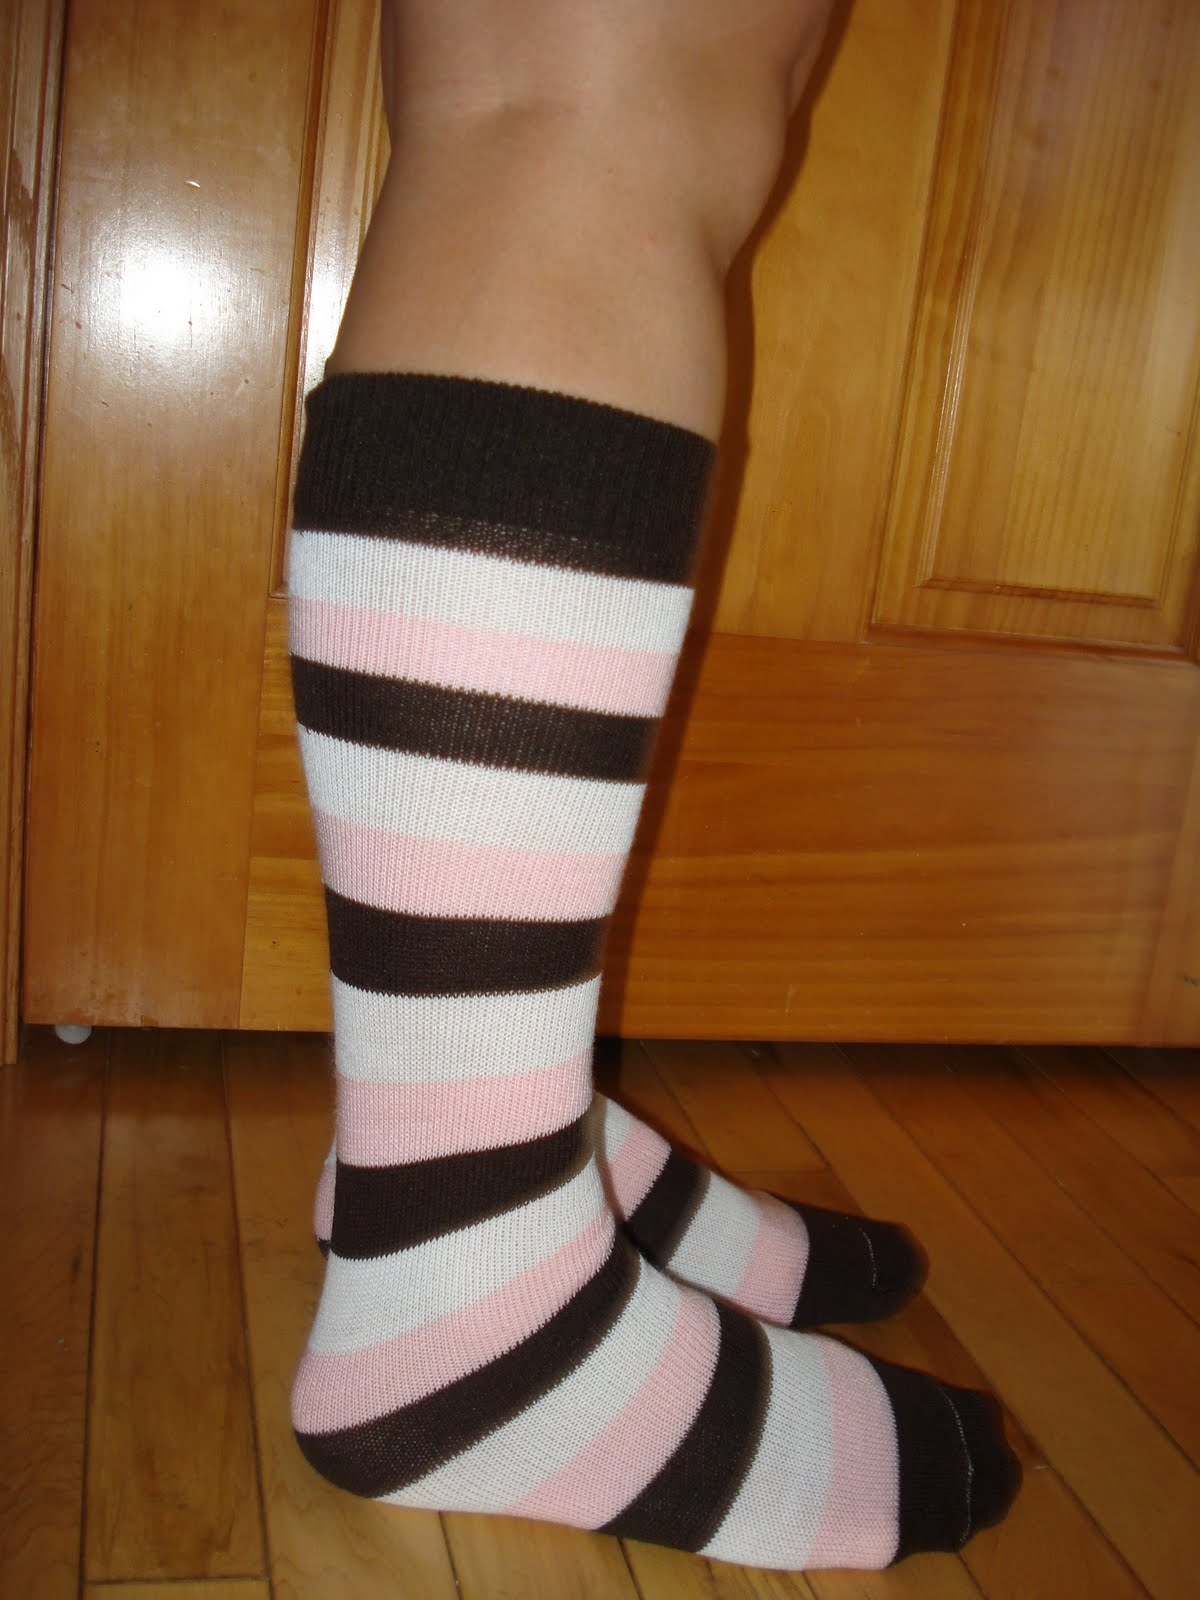 292f4cdf89ebc There are so many of you out there that match knee high socks with your  running outfits ... and we all love it and talk about it. Learn about the  history of ...